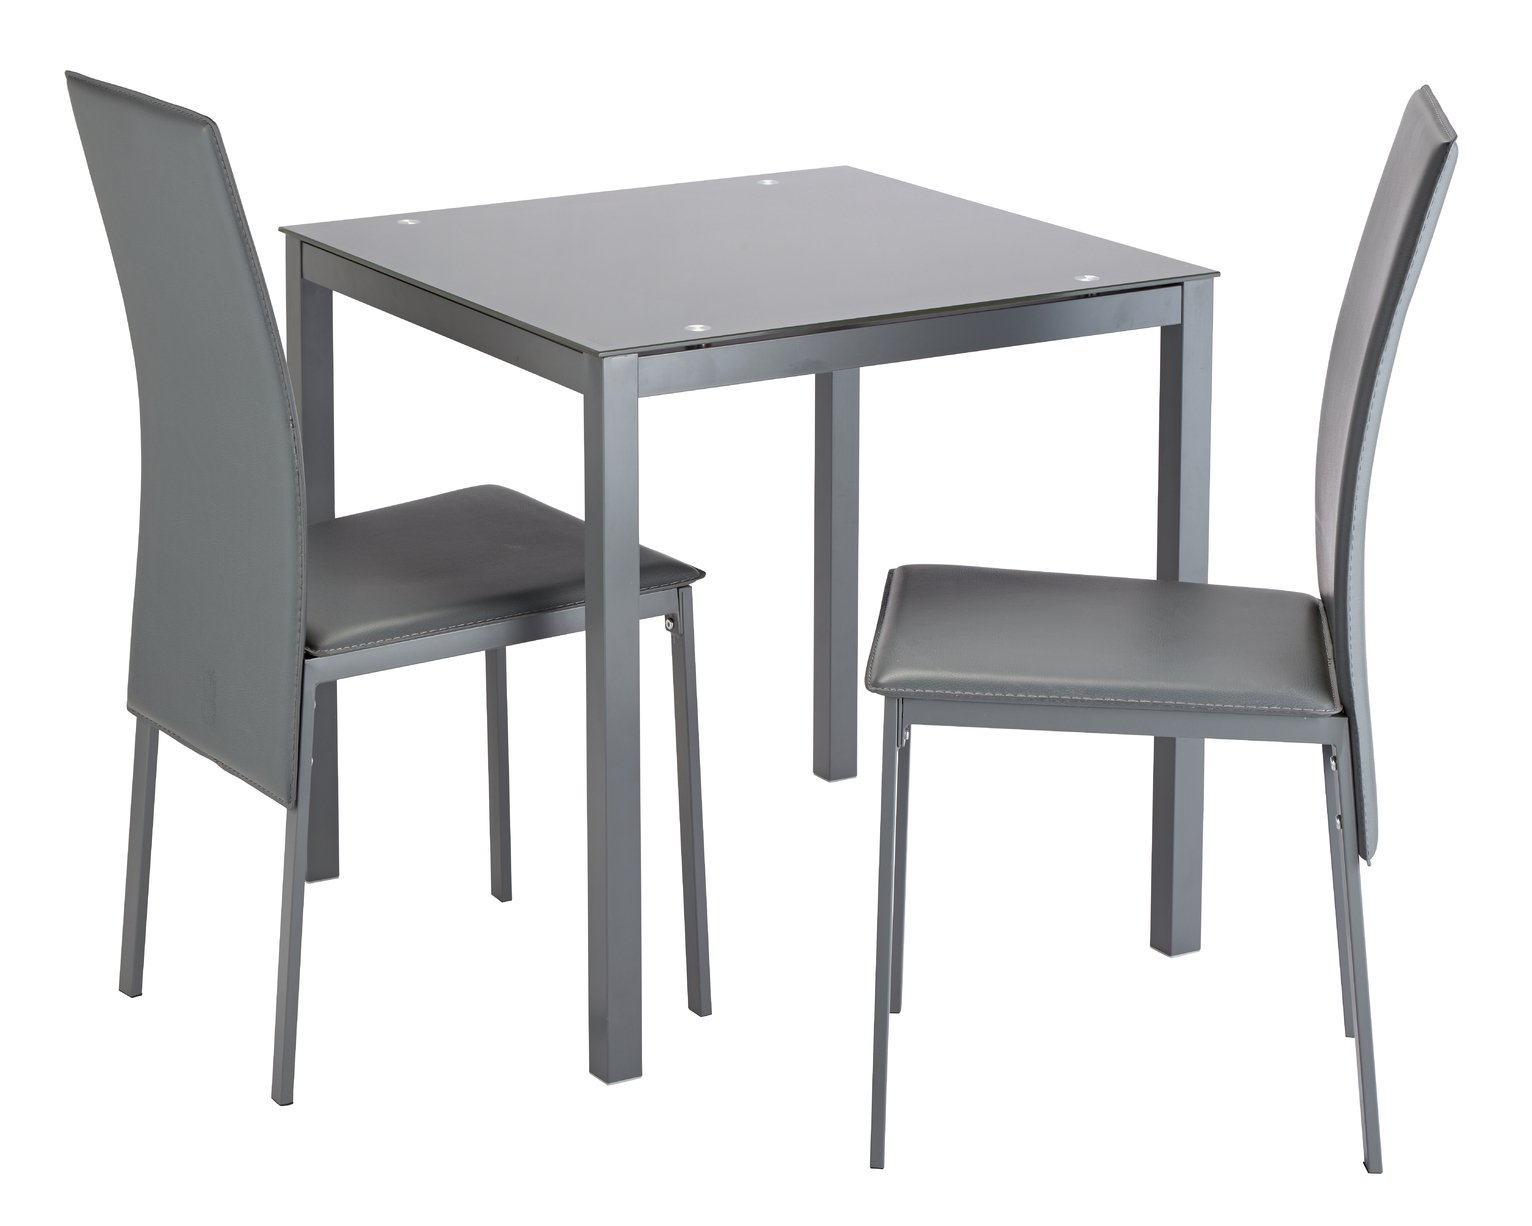 Argos Home Lido Glass Dining Table & 2 Grey Chairs